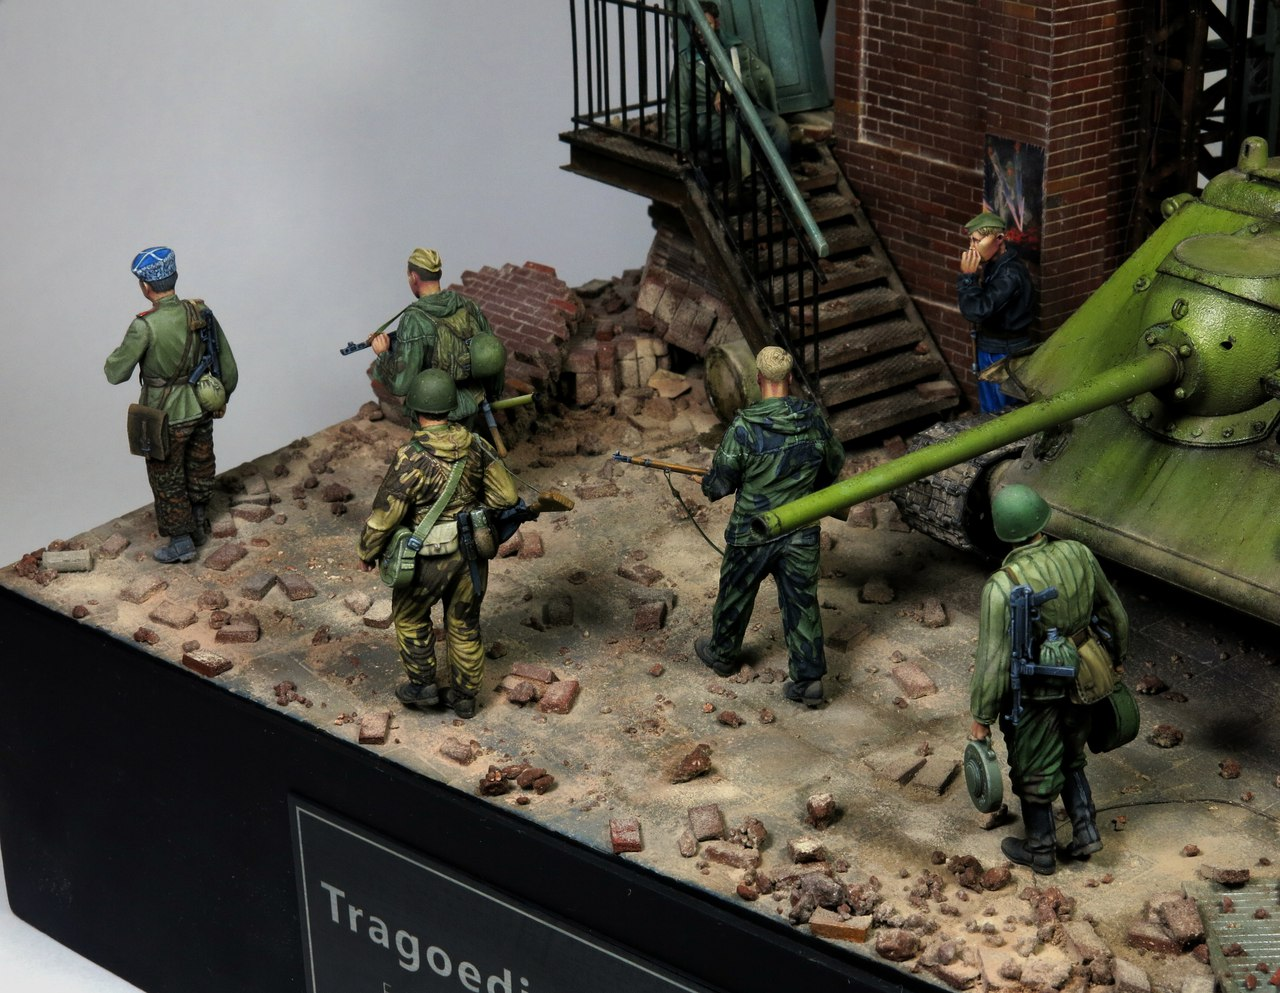 Dioramas and Vignettes: Tragoedia in finem, photo #10